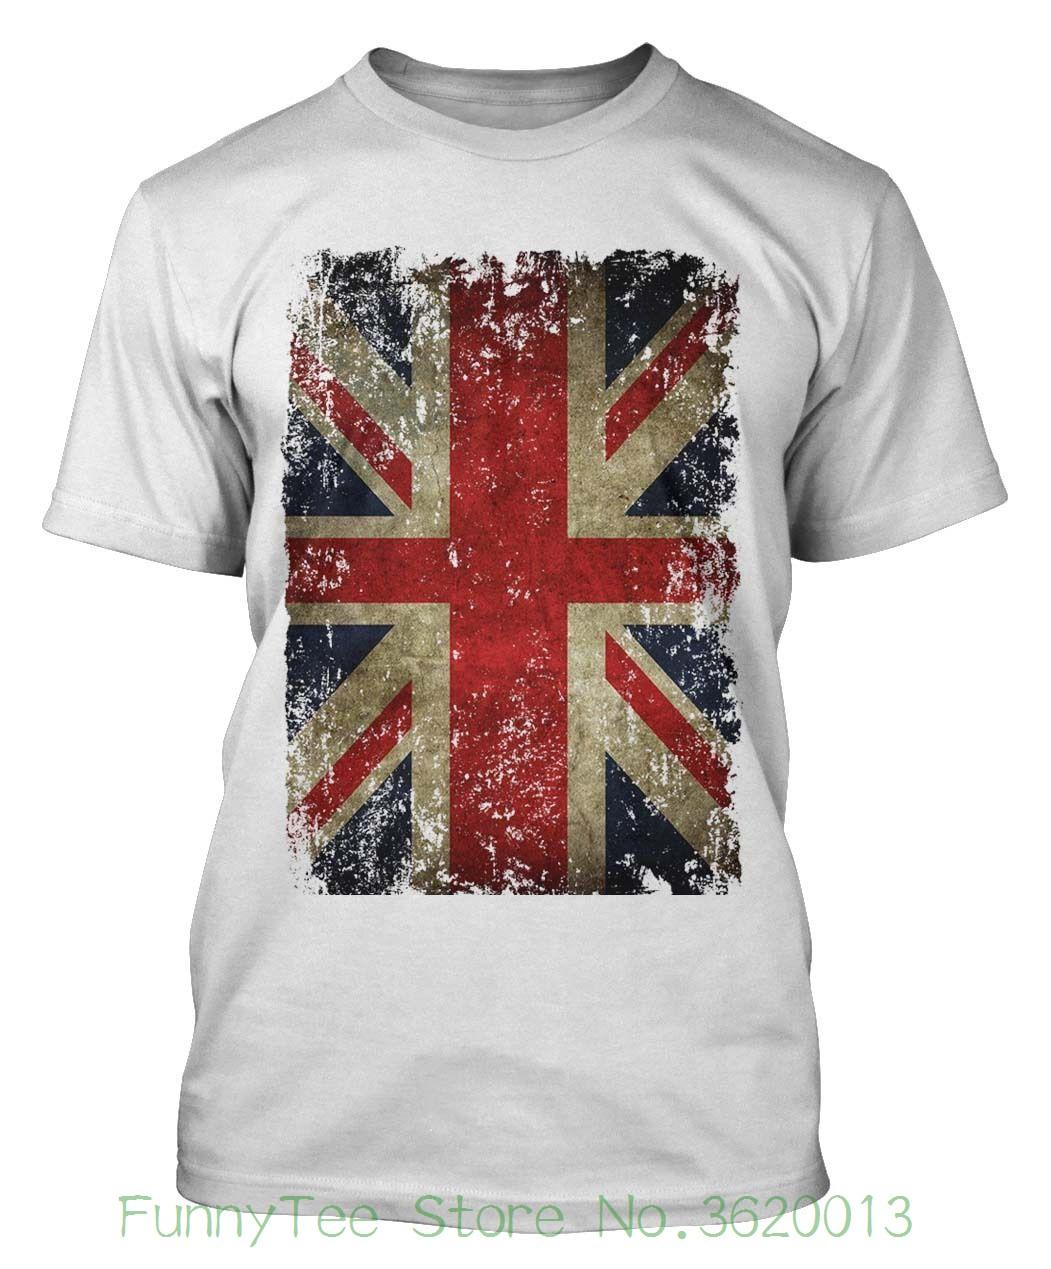 Women S Tee Union Jack T Shirt Distressed Grunge Vintage Uk British Flag  Great Britain T Shirt Cheap Wholesale Cute T Shirts Nerd T Shirts From ... 9196410b574b